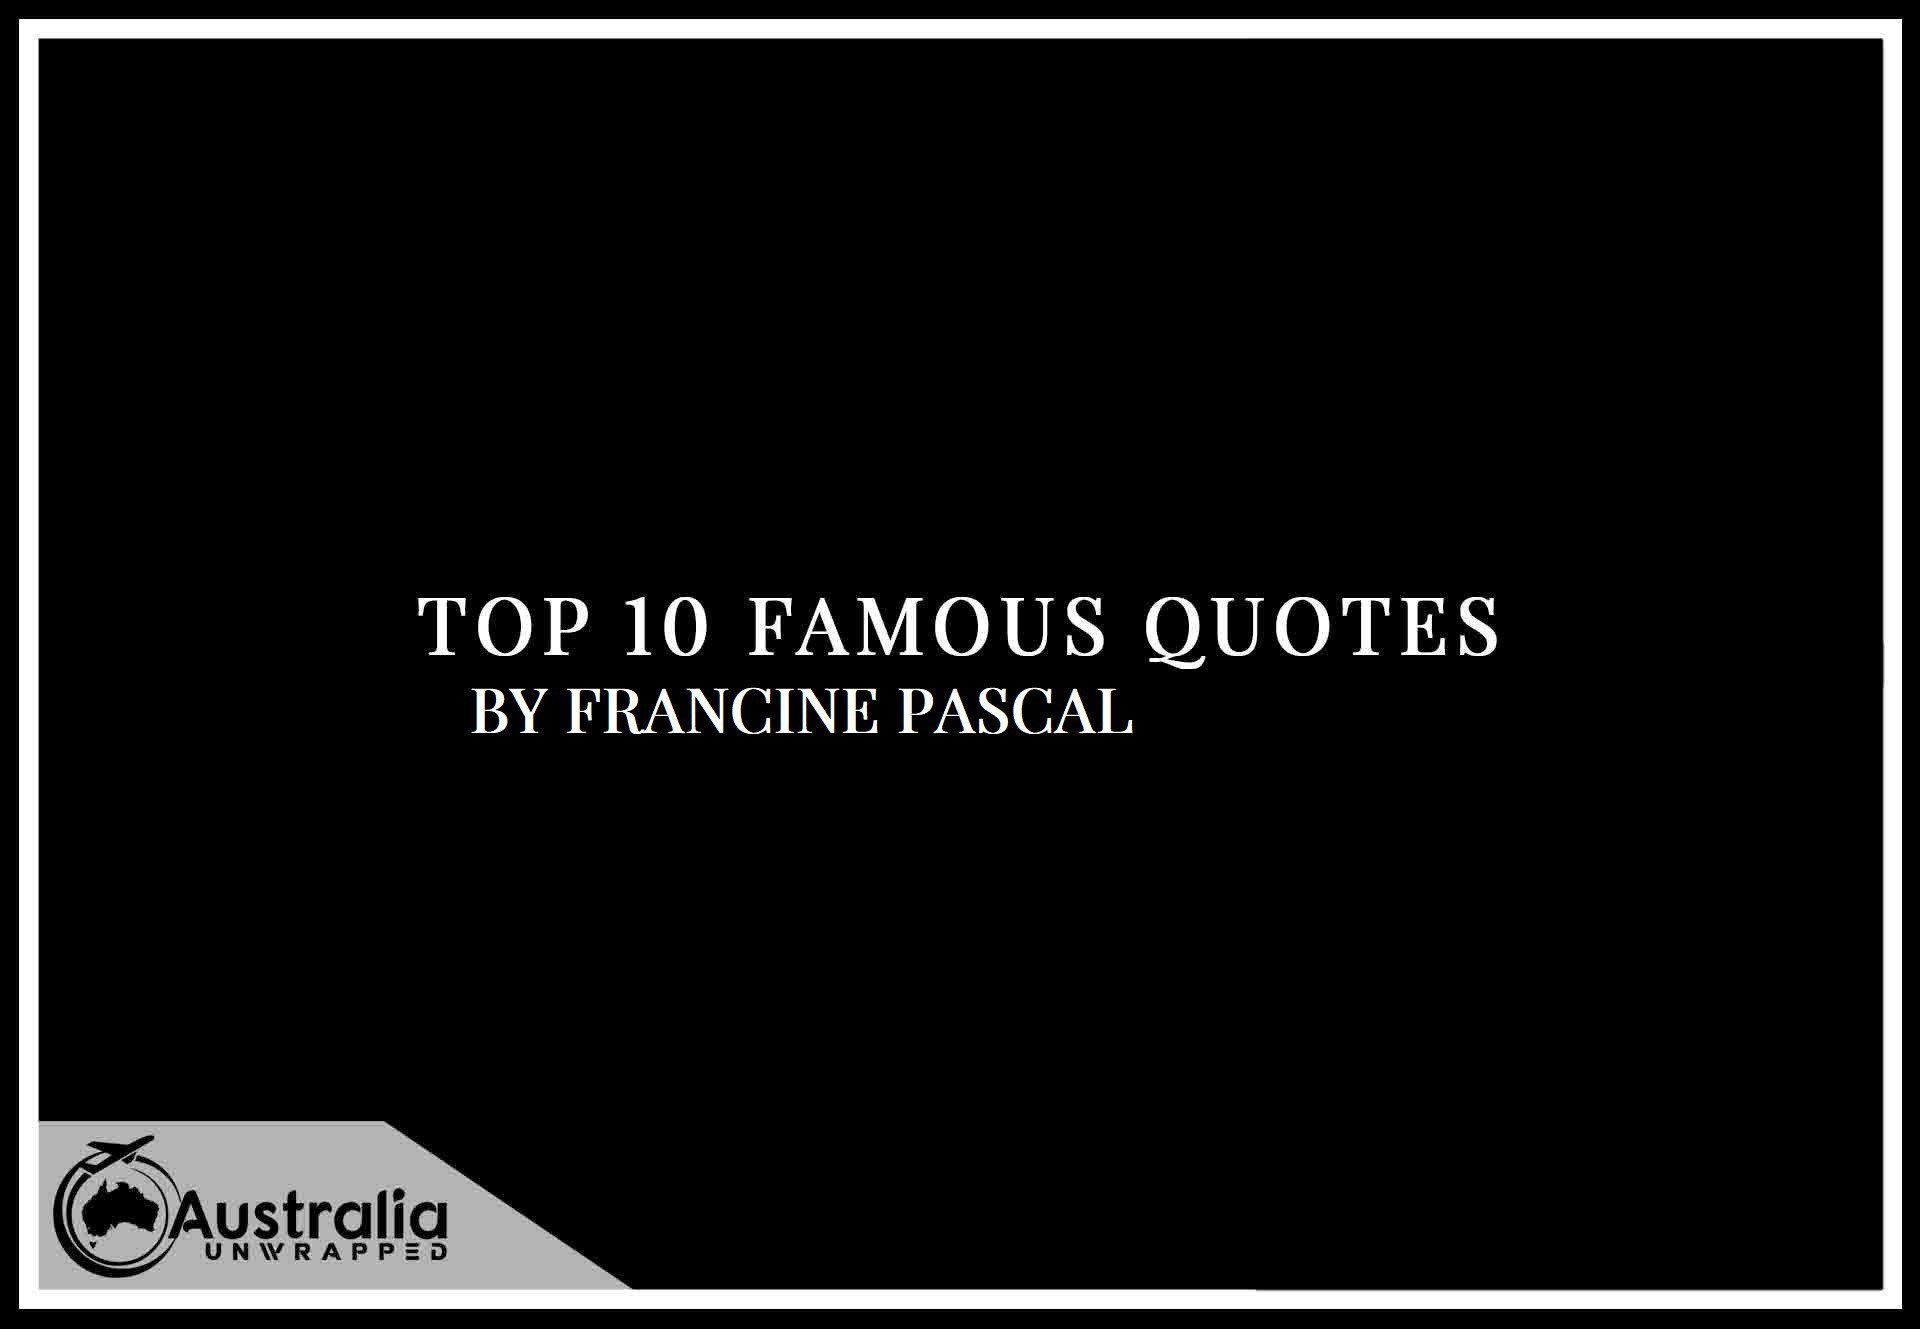 Top 10 Famous Quotes by Author Francine Pascal